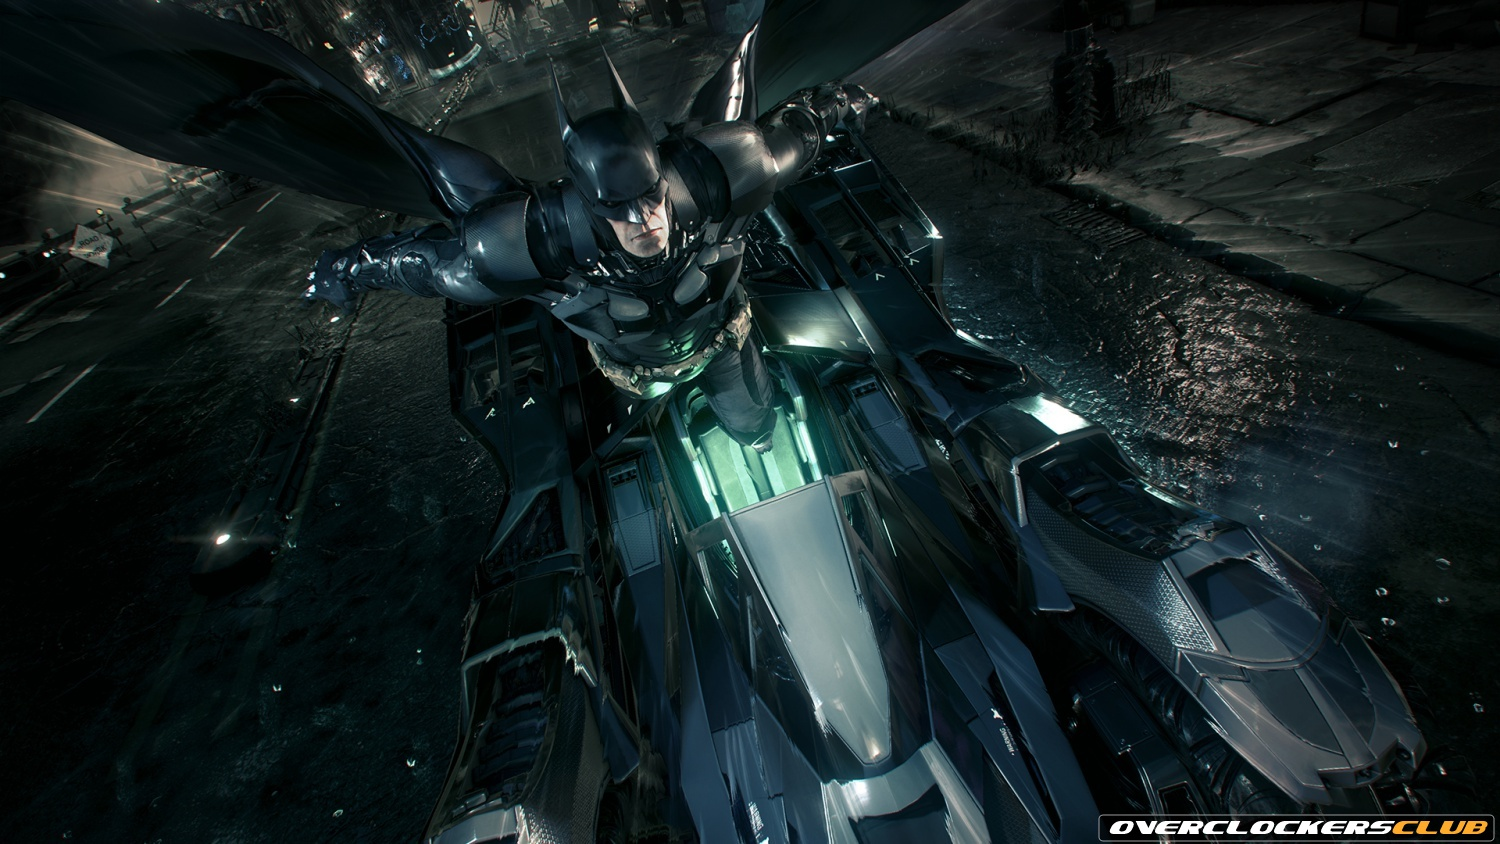 Batman: Arkham Knight Gets its First Official Gameplay Trailer